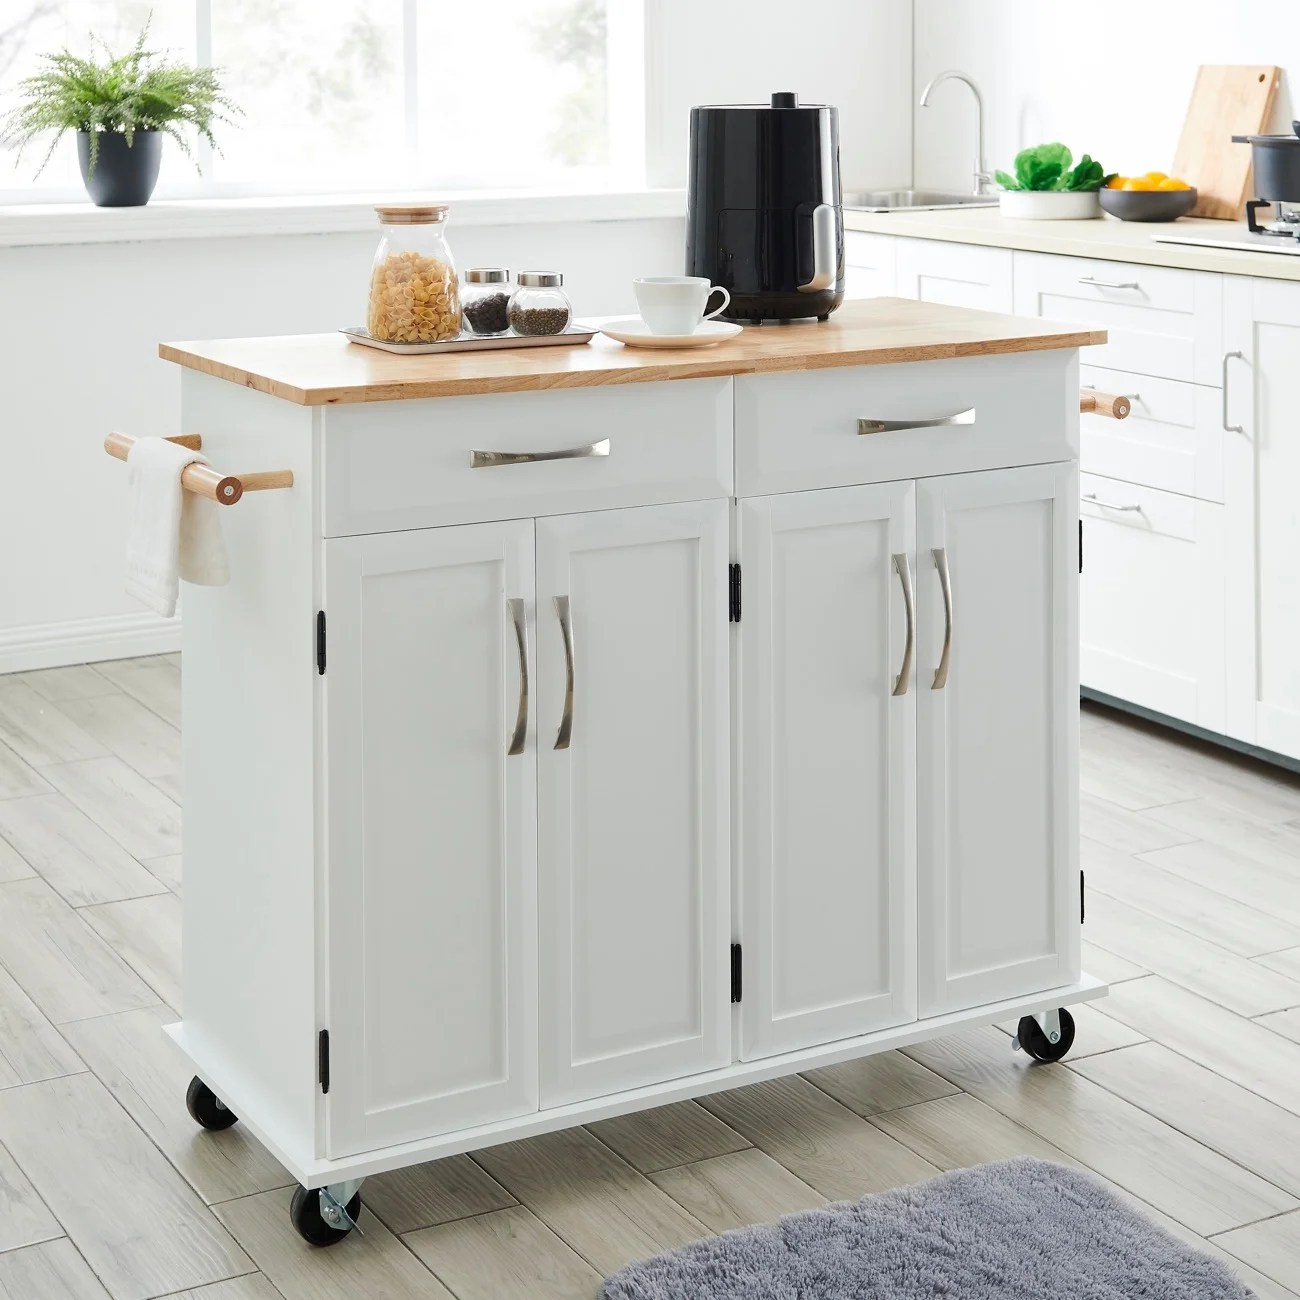 Shop Belleze White Wood Portable Kitchen Cart Rolling And Island Storage With Handle Standard Overstock 26880760